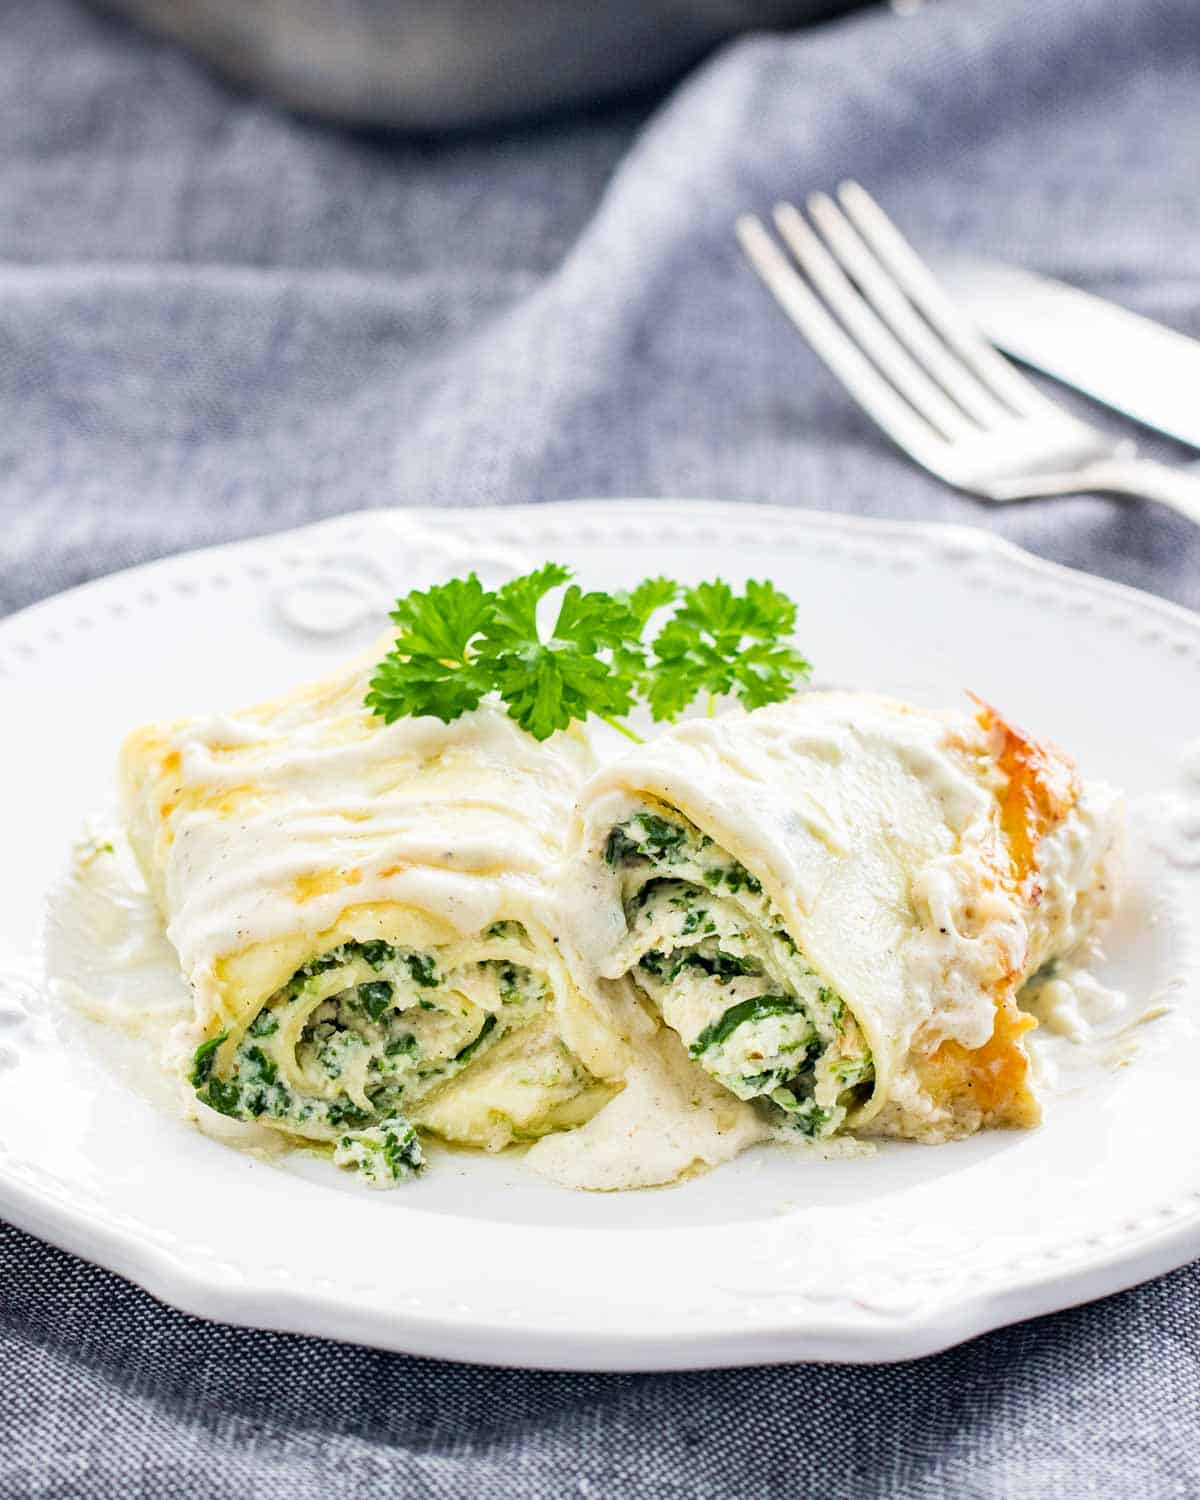 a lasagna roll up cut in half on a white plate garnished with parsley